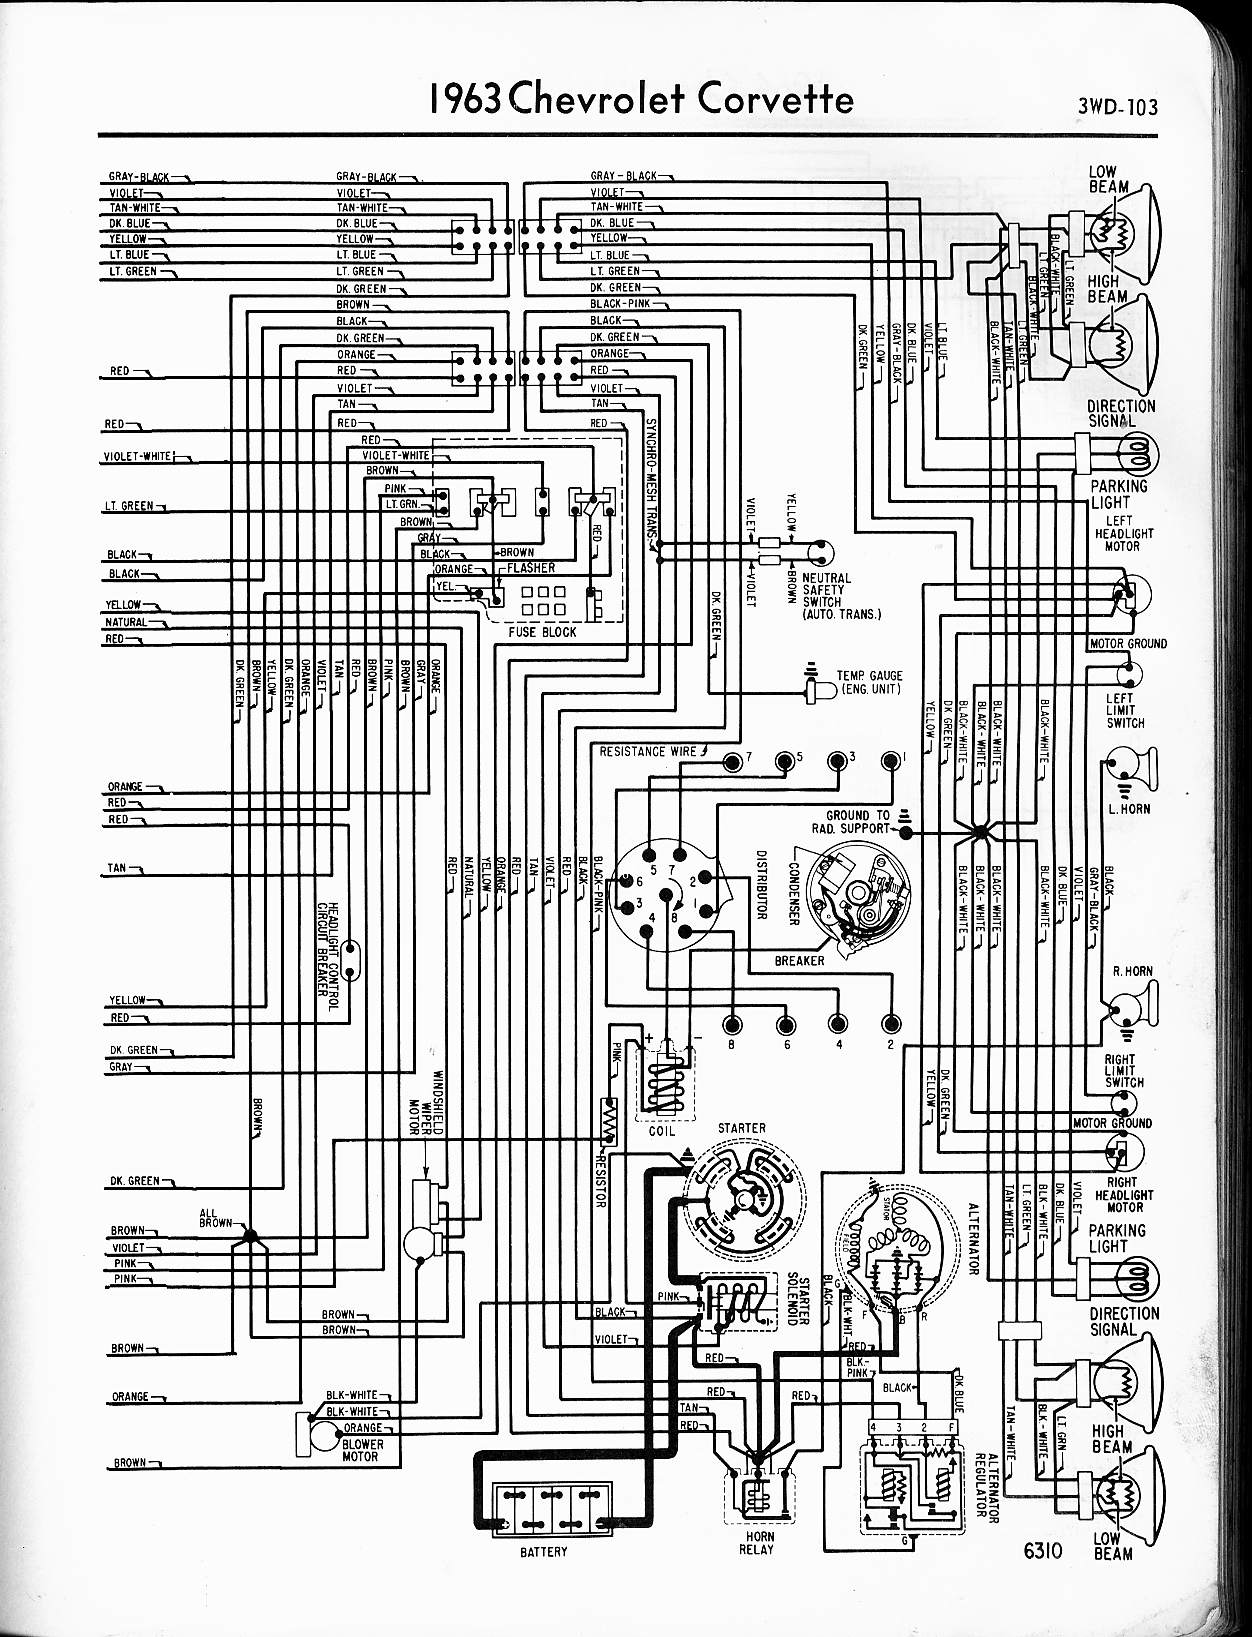 1960 Corvette Wiring Harness Opinions About Wiring Diagram \u2022 1985 Corvette  Engine Wiring Diagram 85 Corvette Wiring Diagram